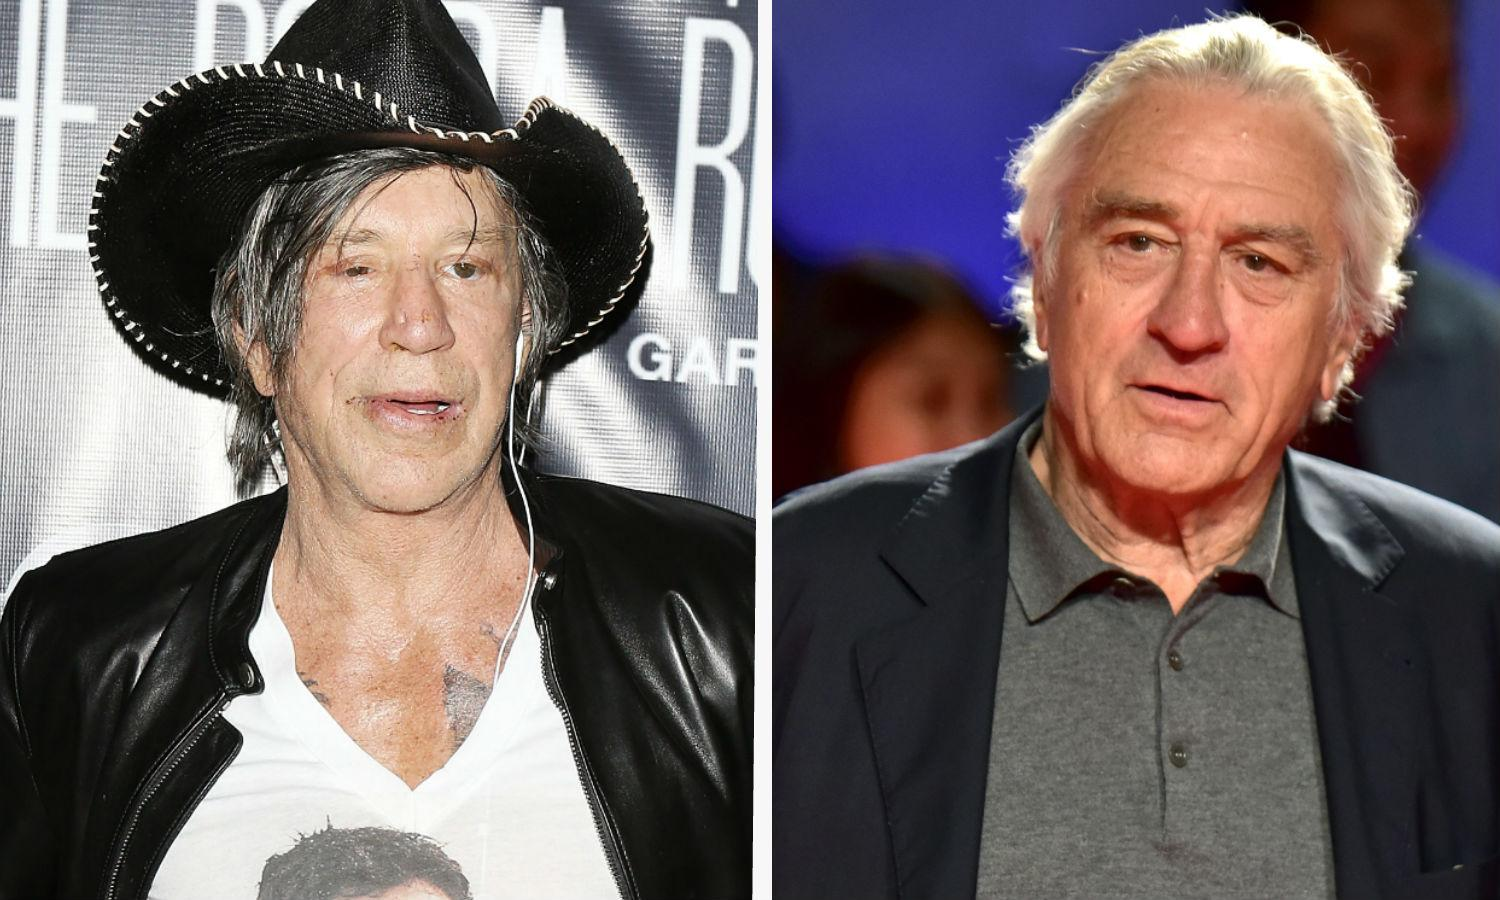 Mickey Rourke claims Robert De Niro feud stopped him landing a role in 'The Irishman' - Yahoo Movies UK